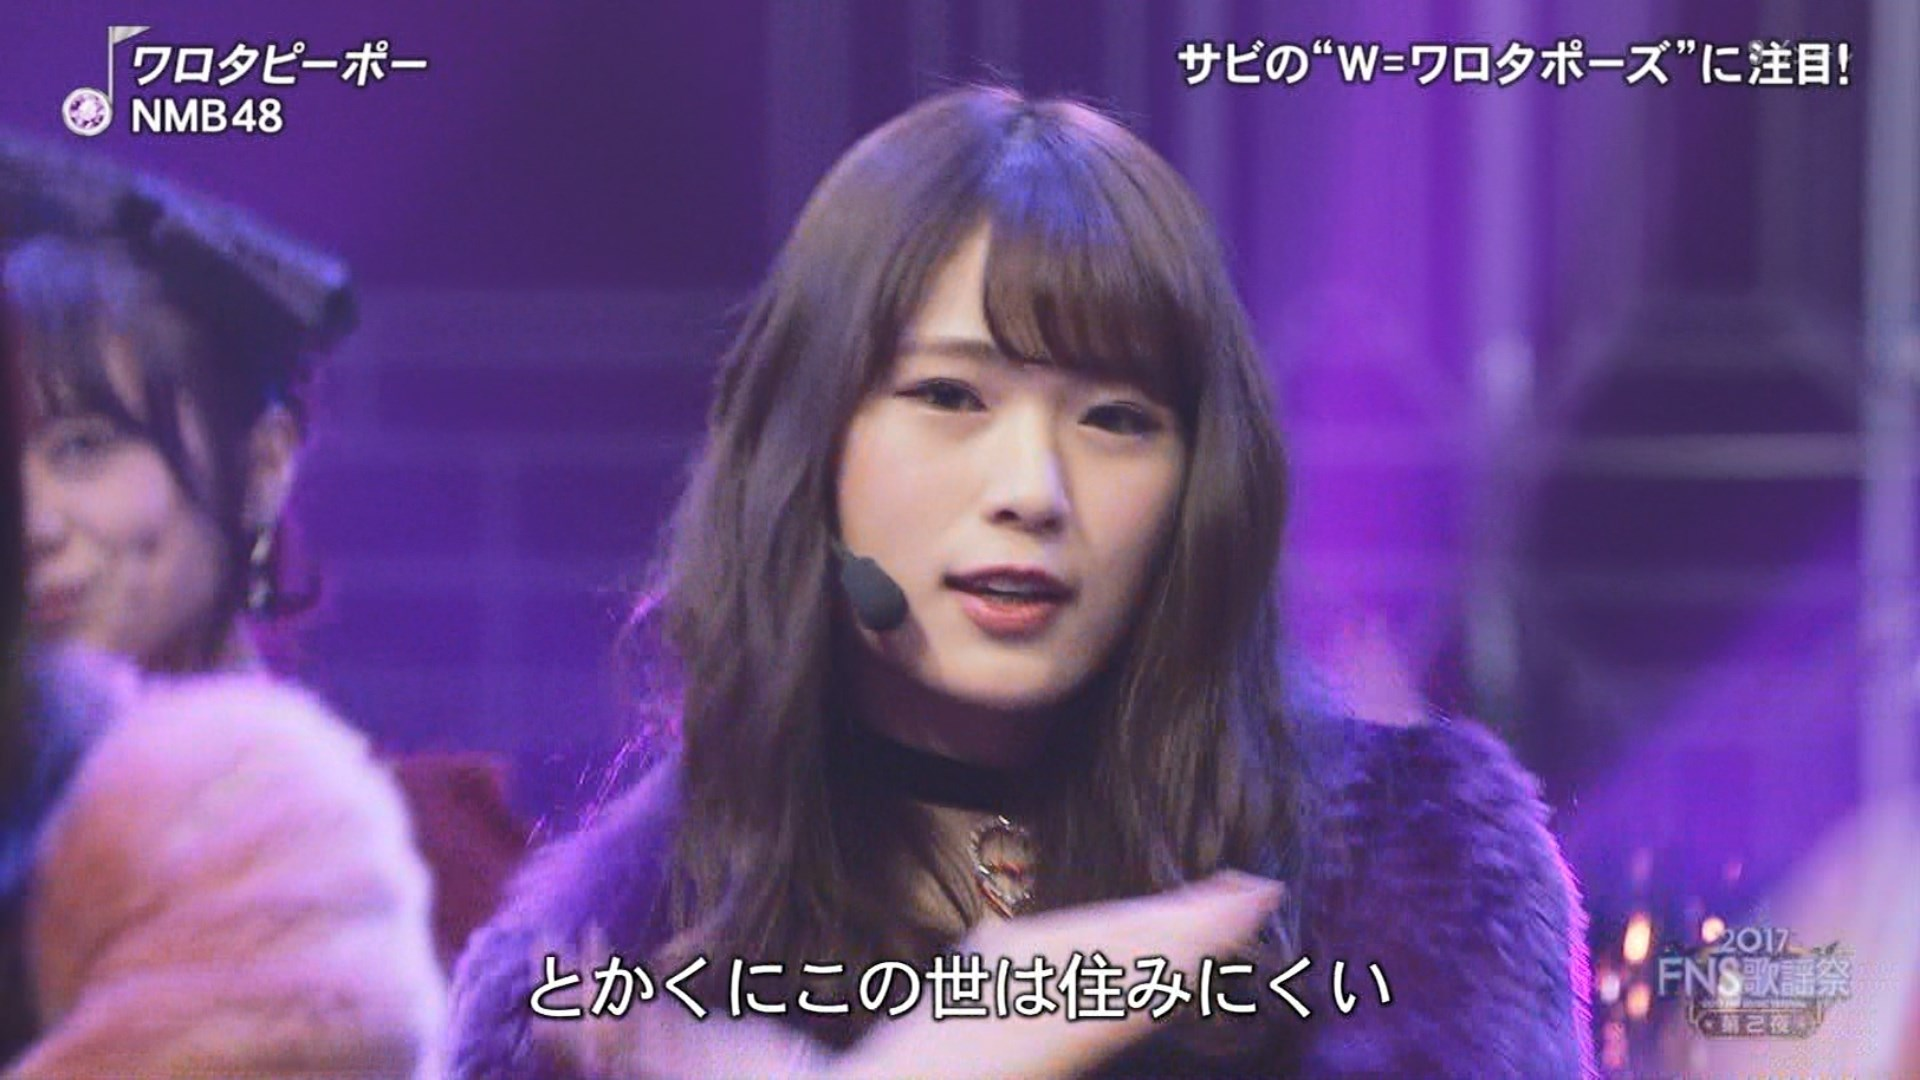 2017FNS歌謡祭第2夜・NMB48ワロタピーポーキャプ-019